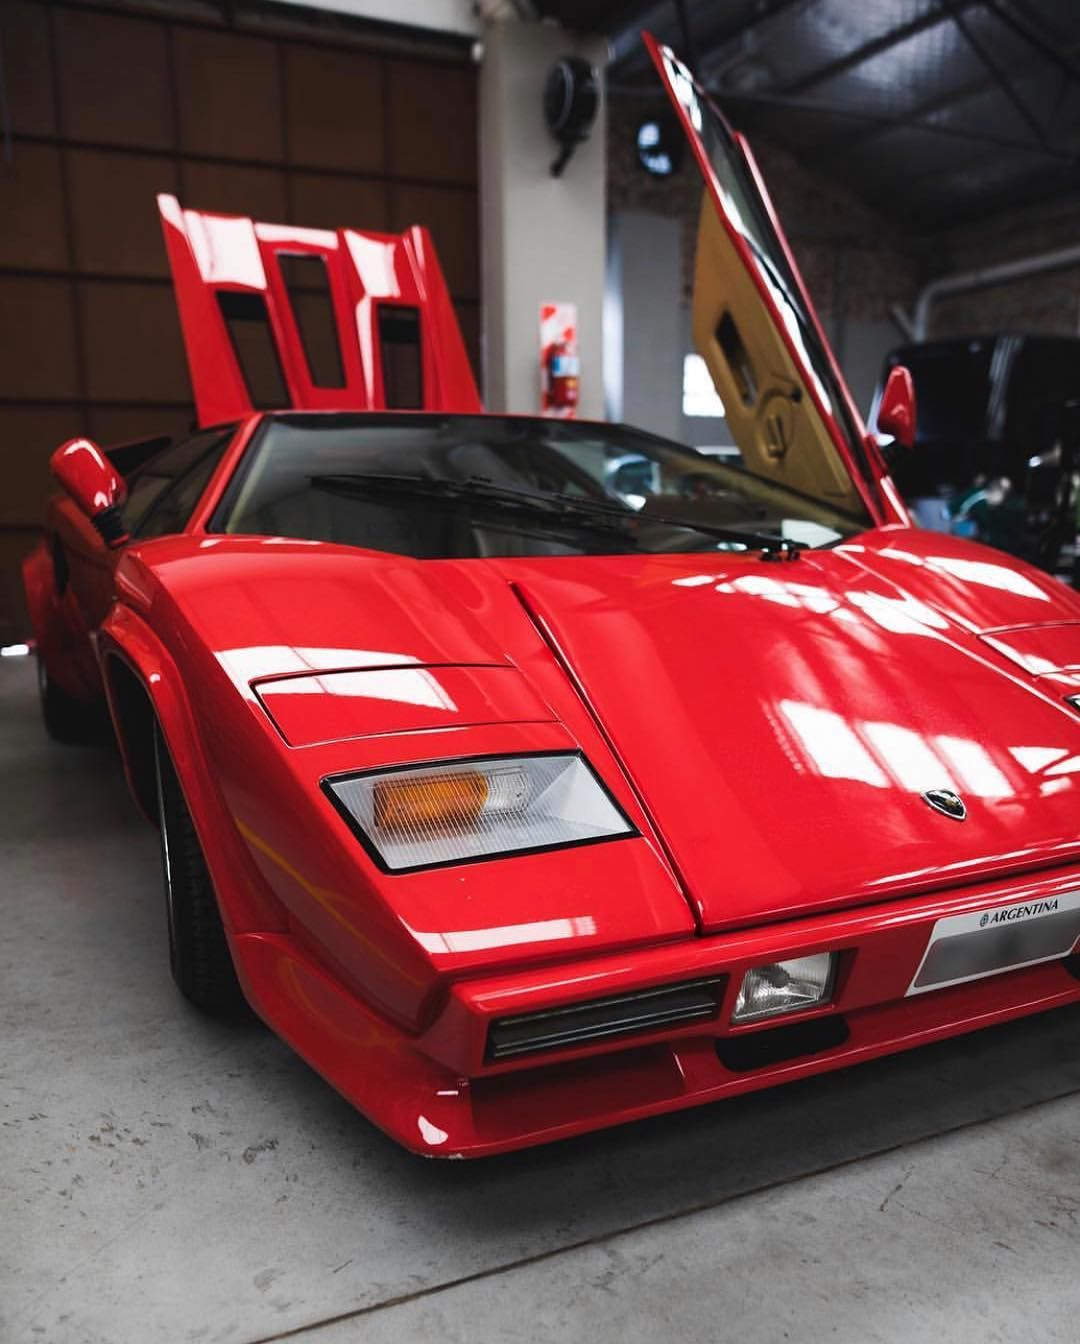 Old Love Never Dies The Countach Became The First Production Car With Vertically Opening Scissored Doors Pioneering The Way Many Lambo Lamborghini Car